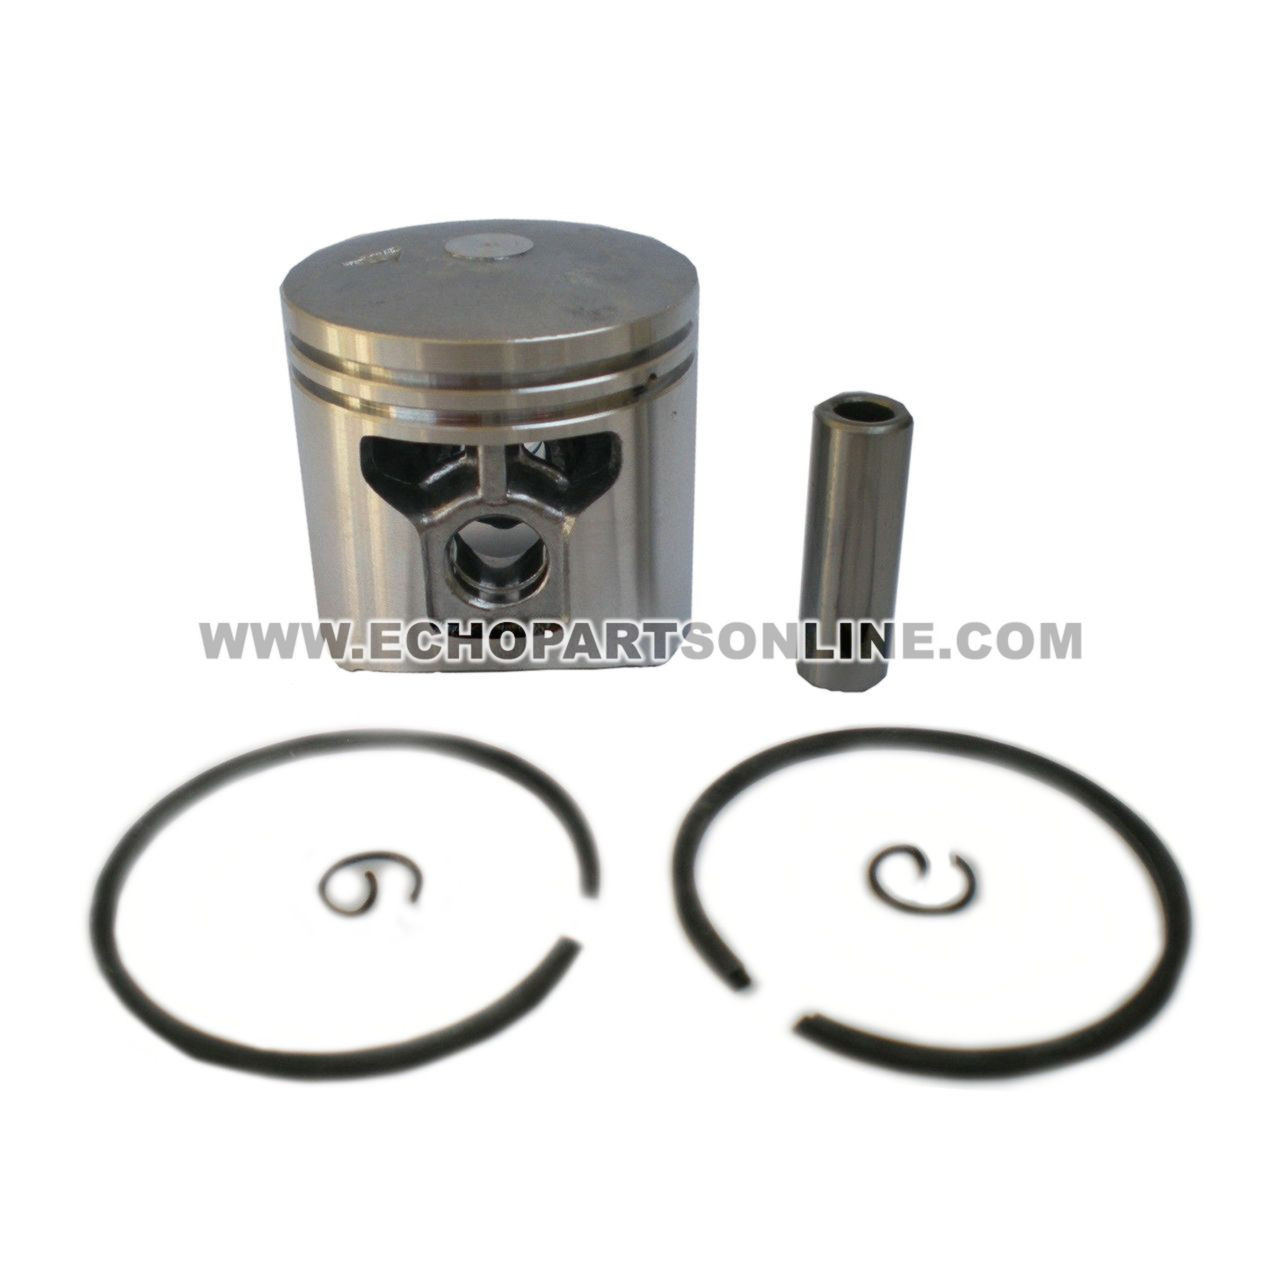 ECHO 10000003710 - PISTON KIT - Image 1